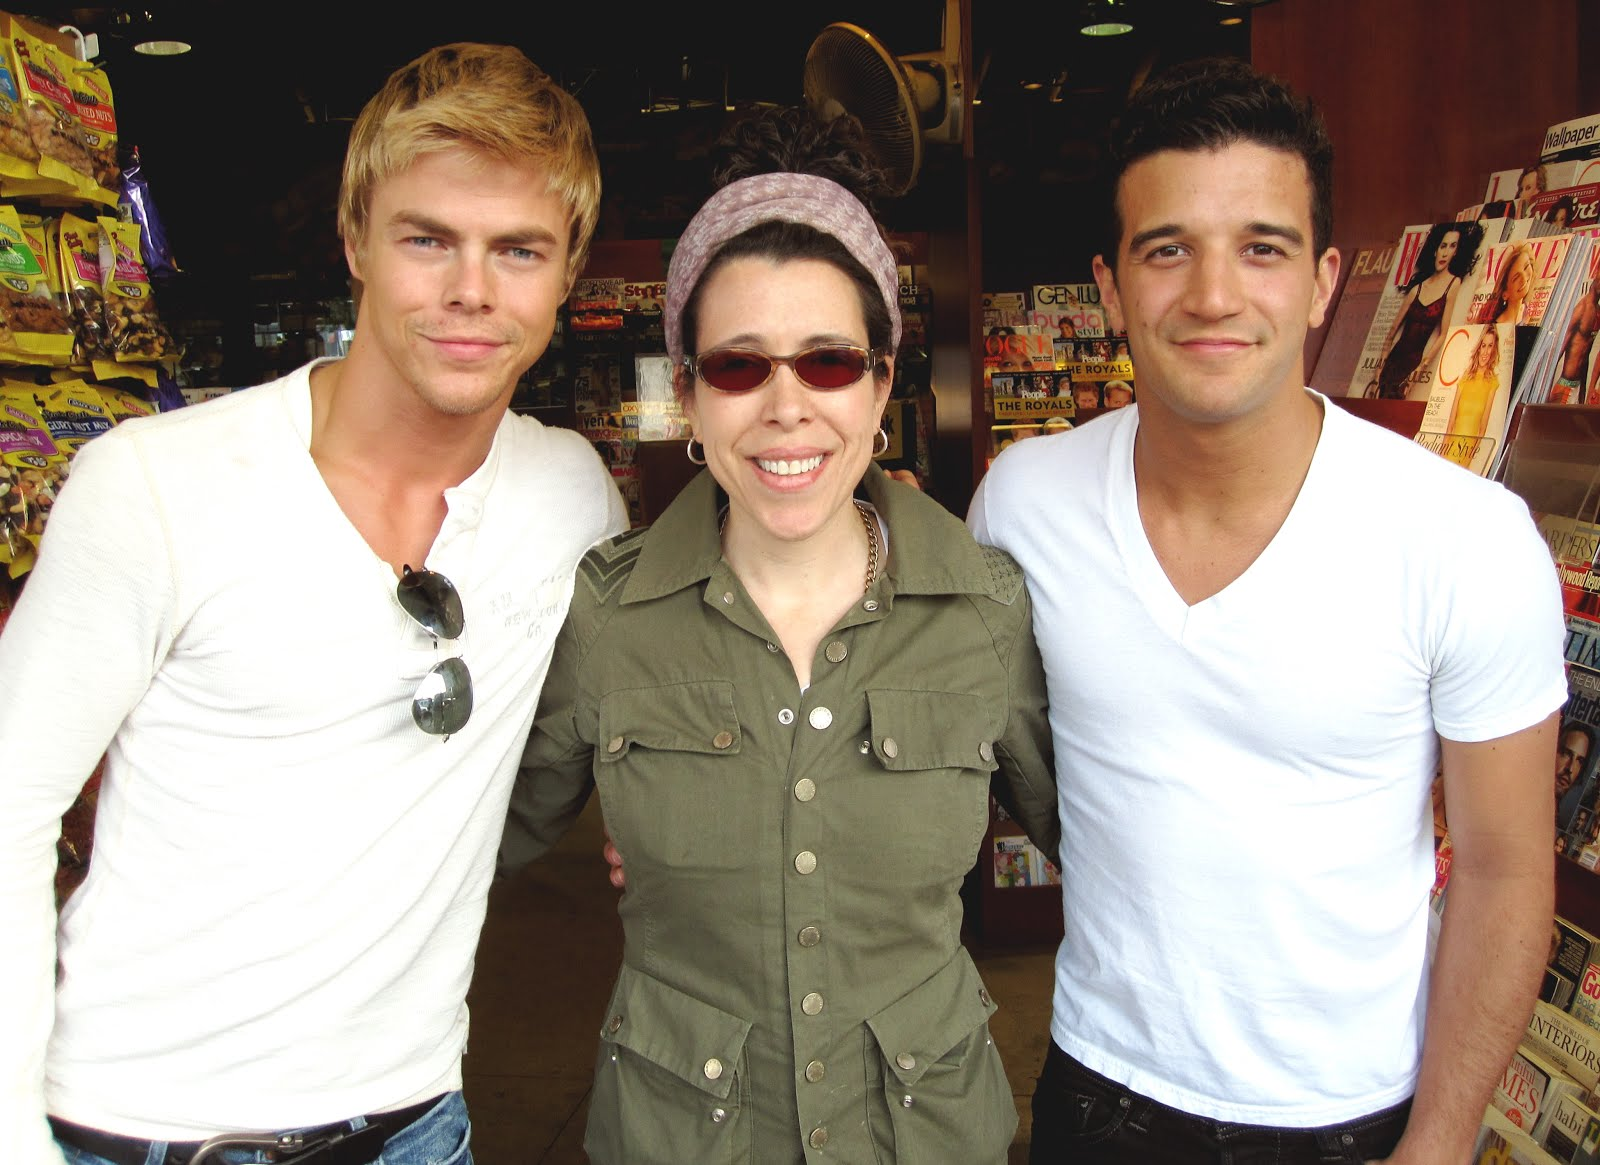 DEREK HOUGH - ME - MARK BALLAS